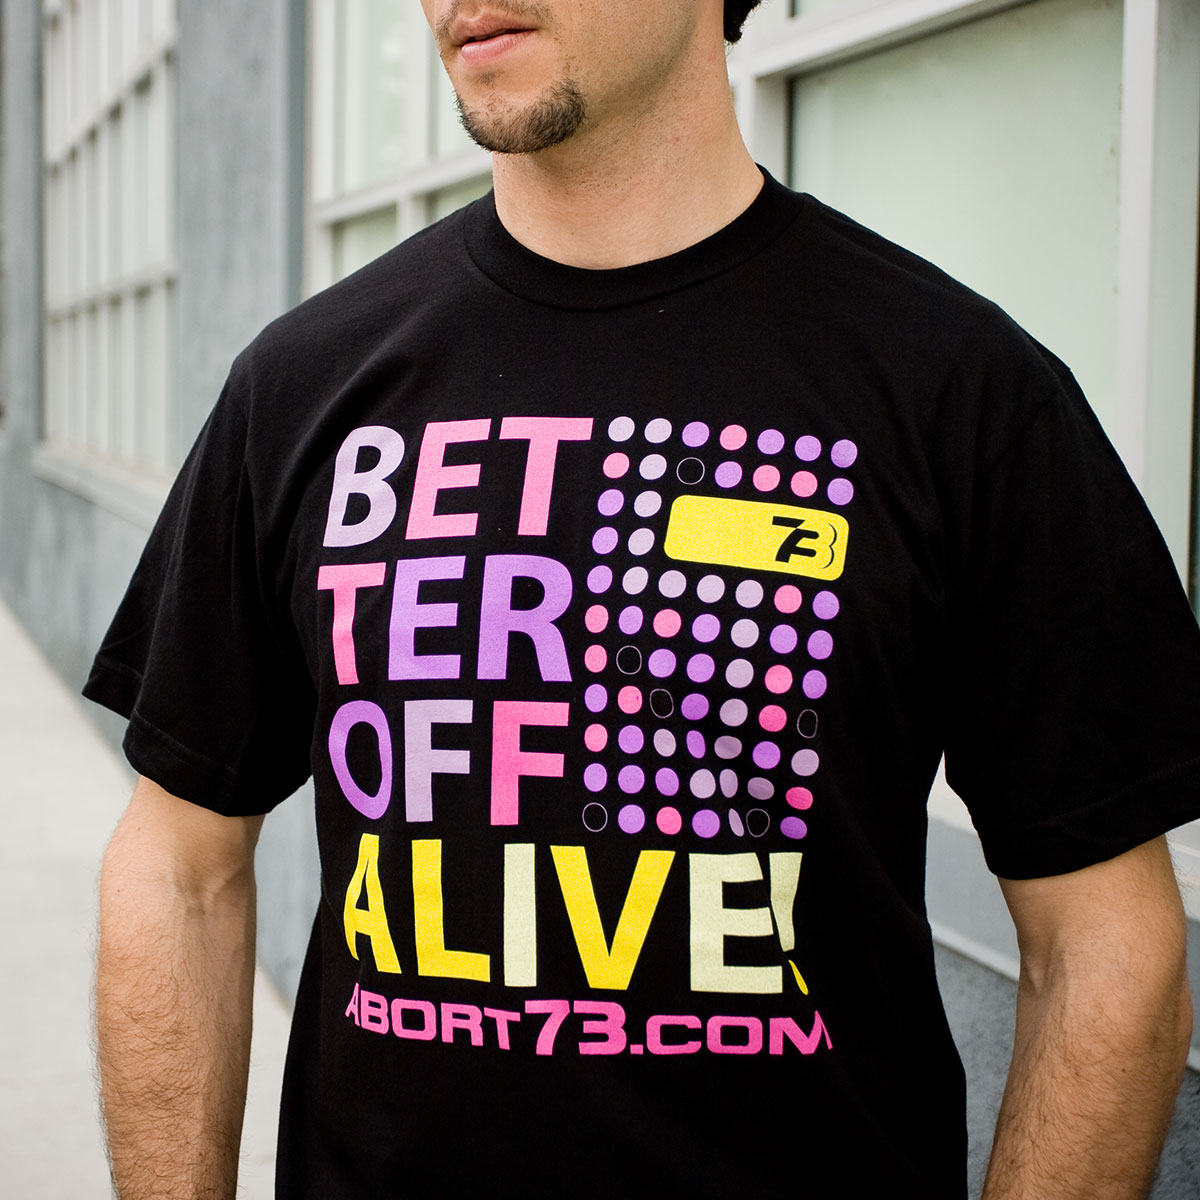 Better Off Alive (Abort73 Unisex T-shirt)